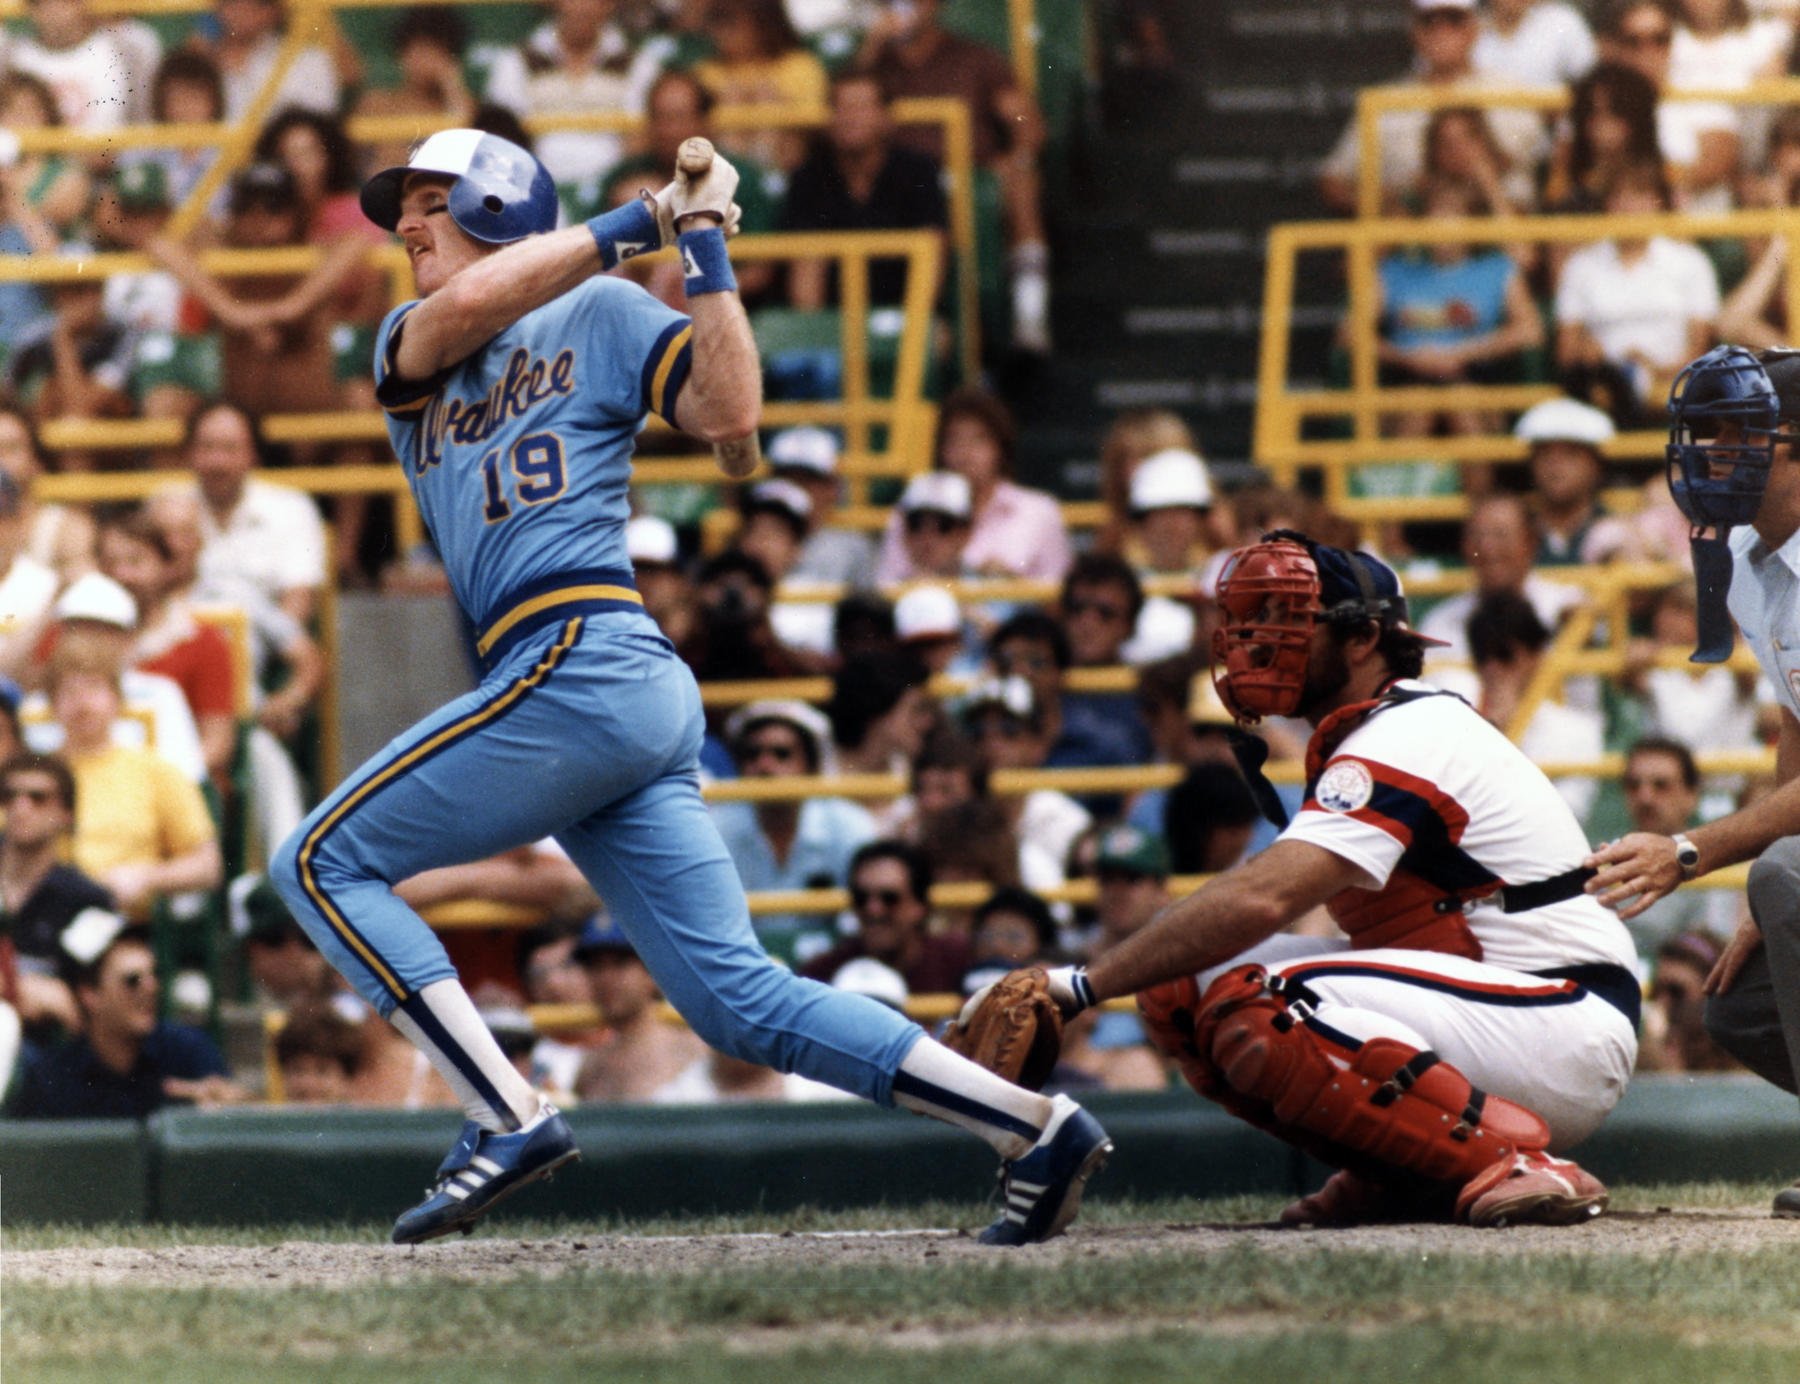 Robin Yount recorded 210 hits in 1982 -- the most of anyone in the major leagues. (National Baseball Hall of Fame)